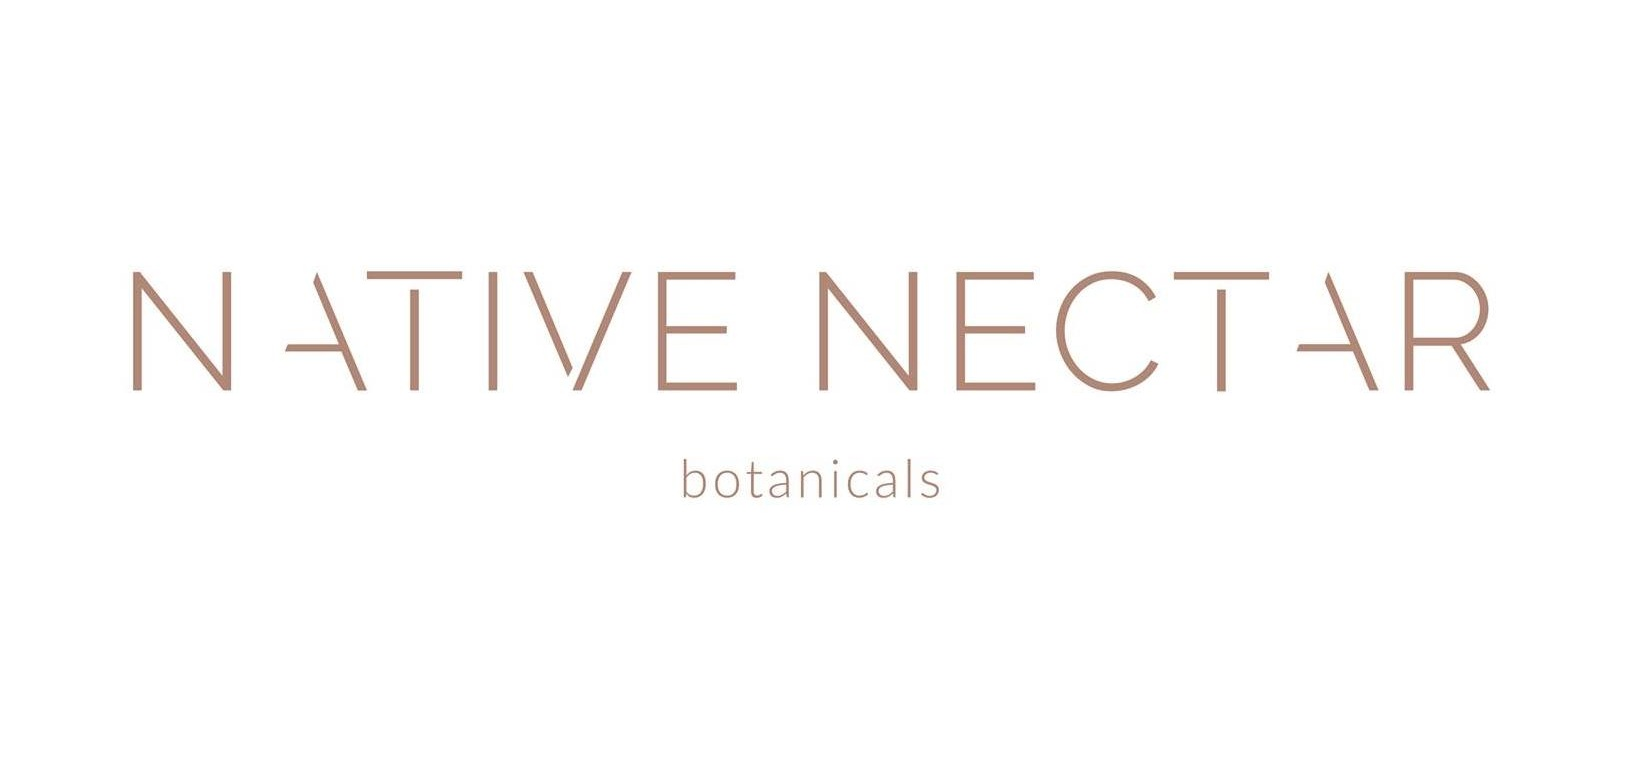 Native Nectar Botanicals - Crafted in the small mountain town of Crested Butte, Colorado, surrounded by wildflowers and snowcapped peaks, Native Nectar Botanicals offerings are truly inspired by nature and passionately made with gratitude.